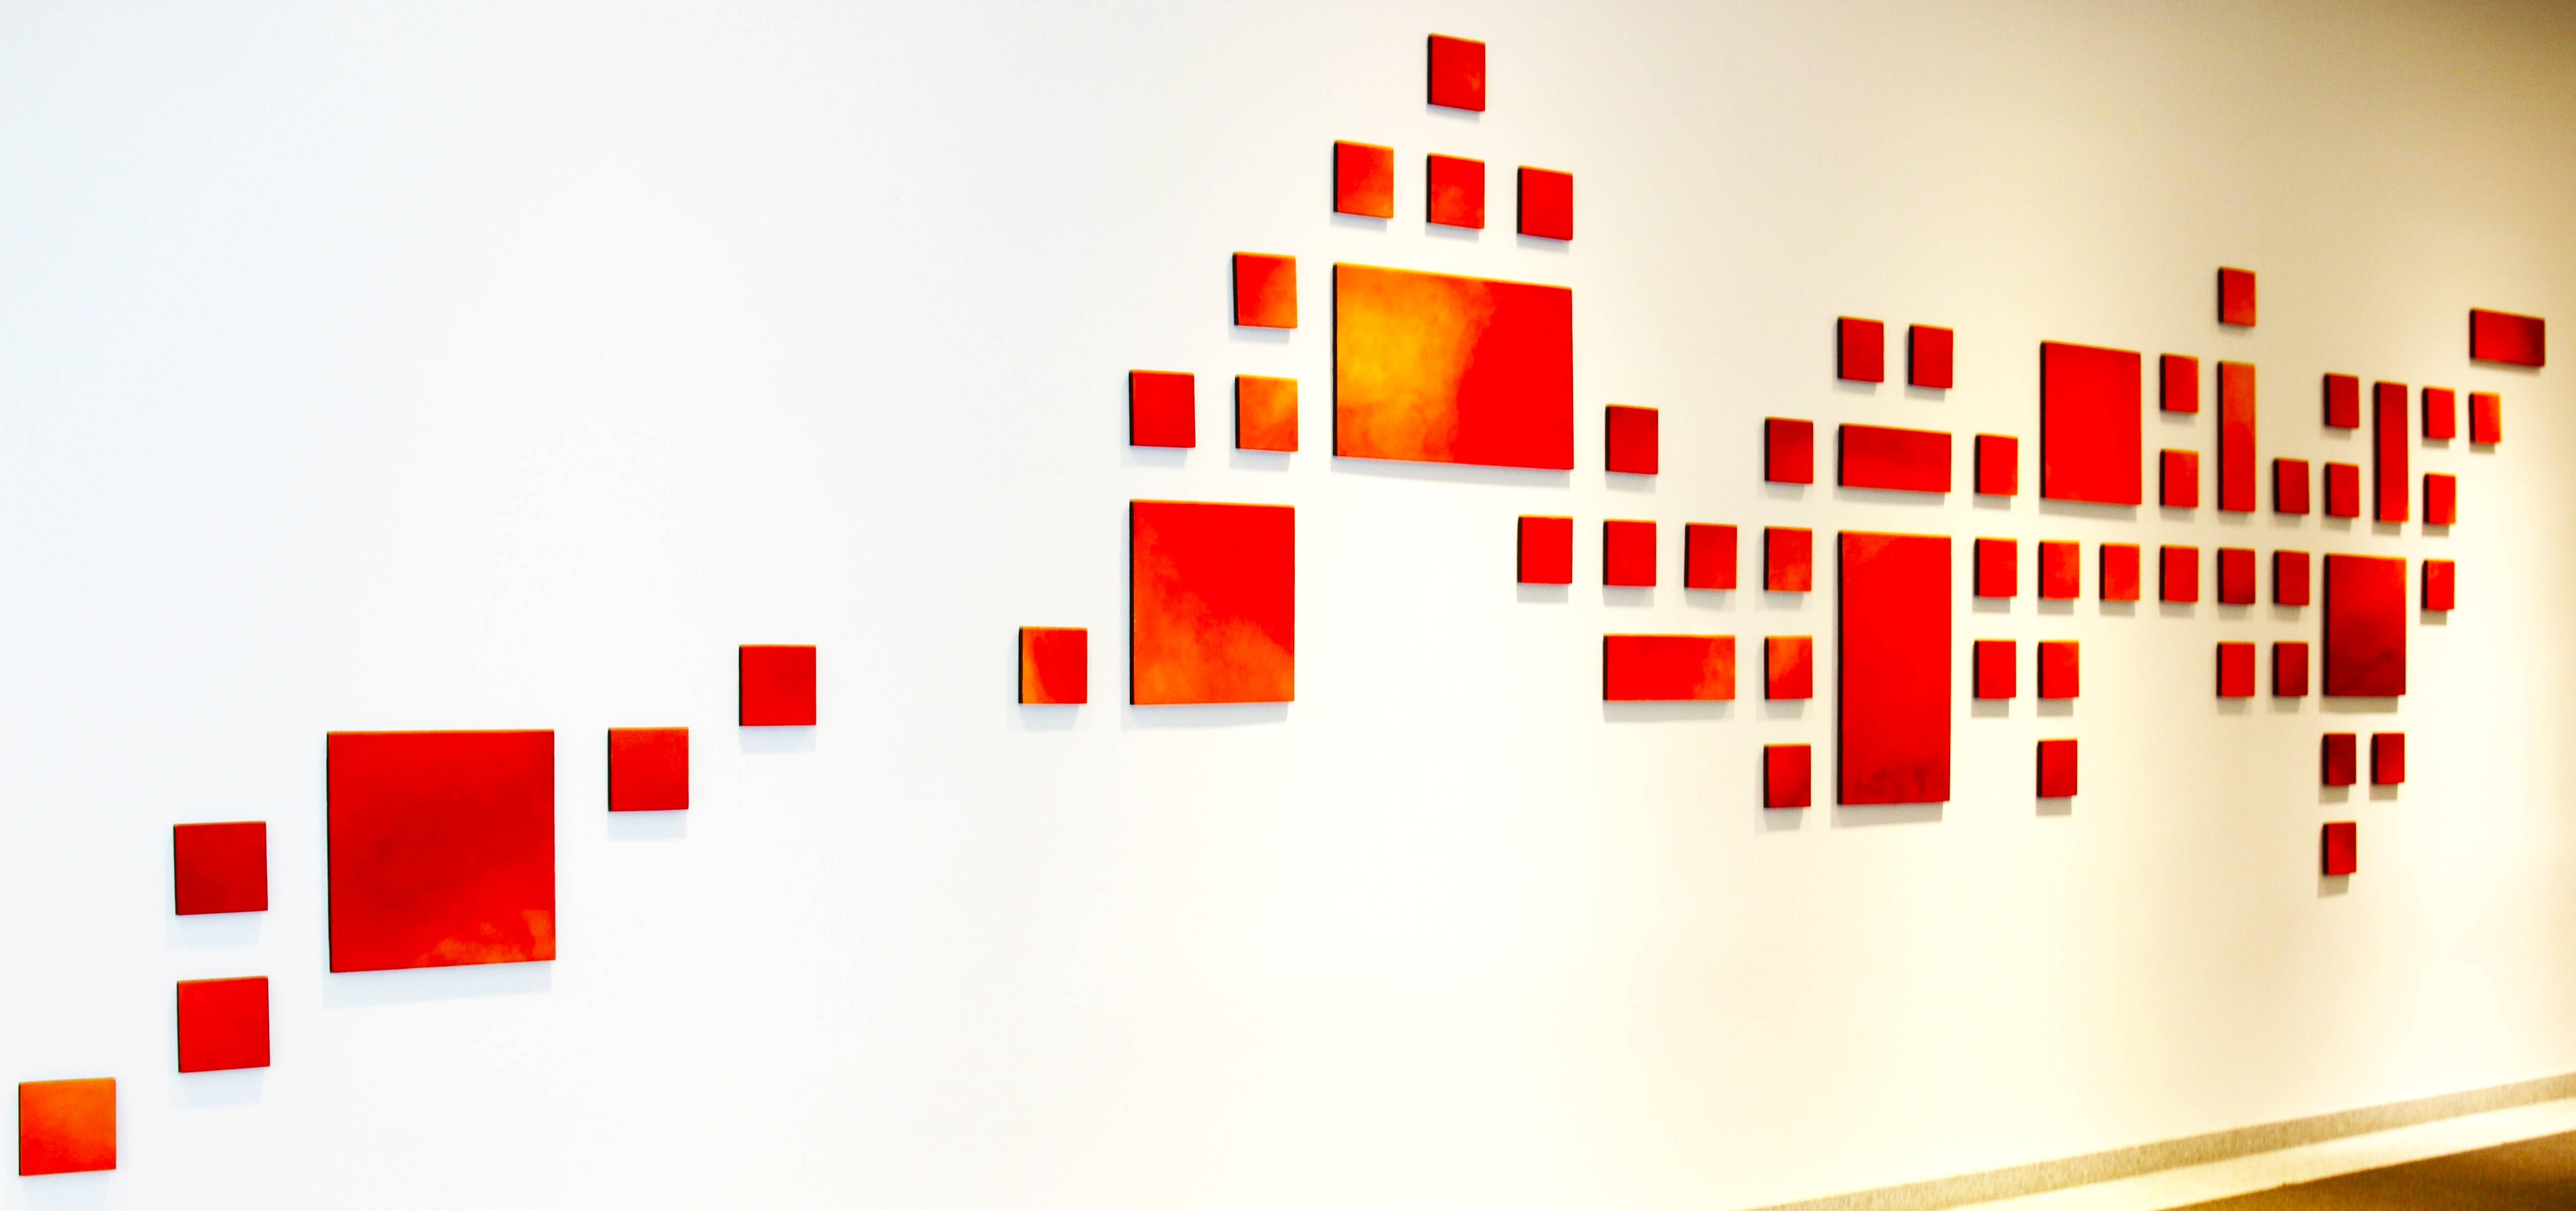 3d Wall Art Archives | Rosemary Pierce Modern Art Throughout Most Current Corporate Wall Art (Gallery 19 of 20)